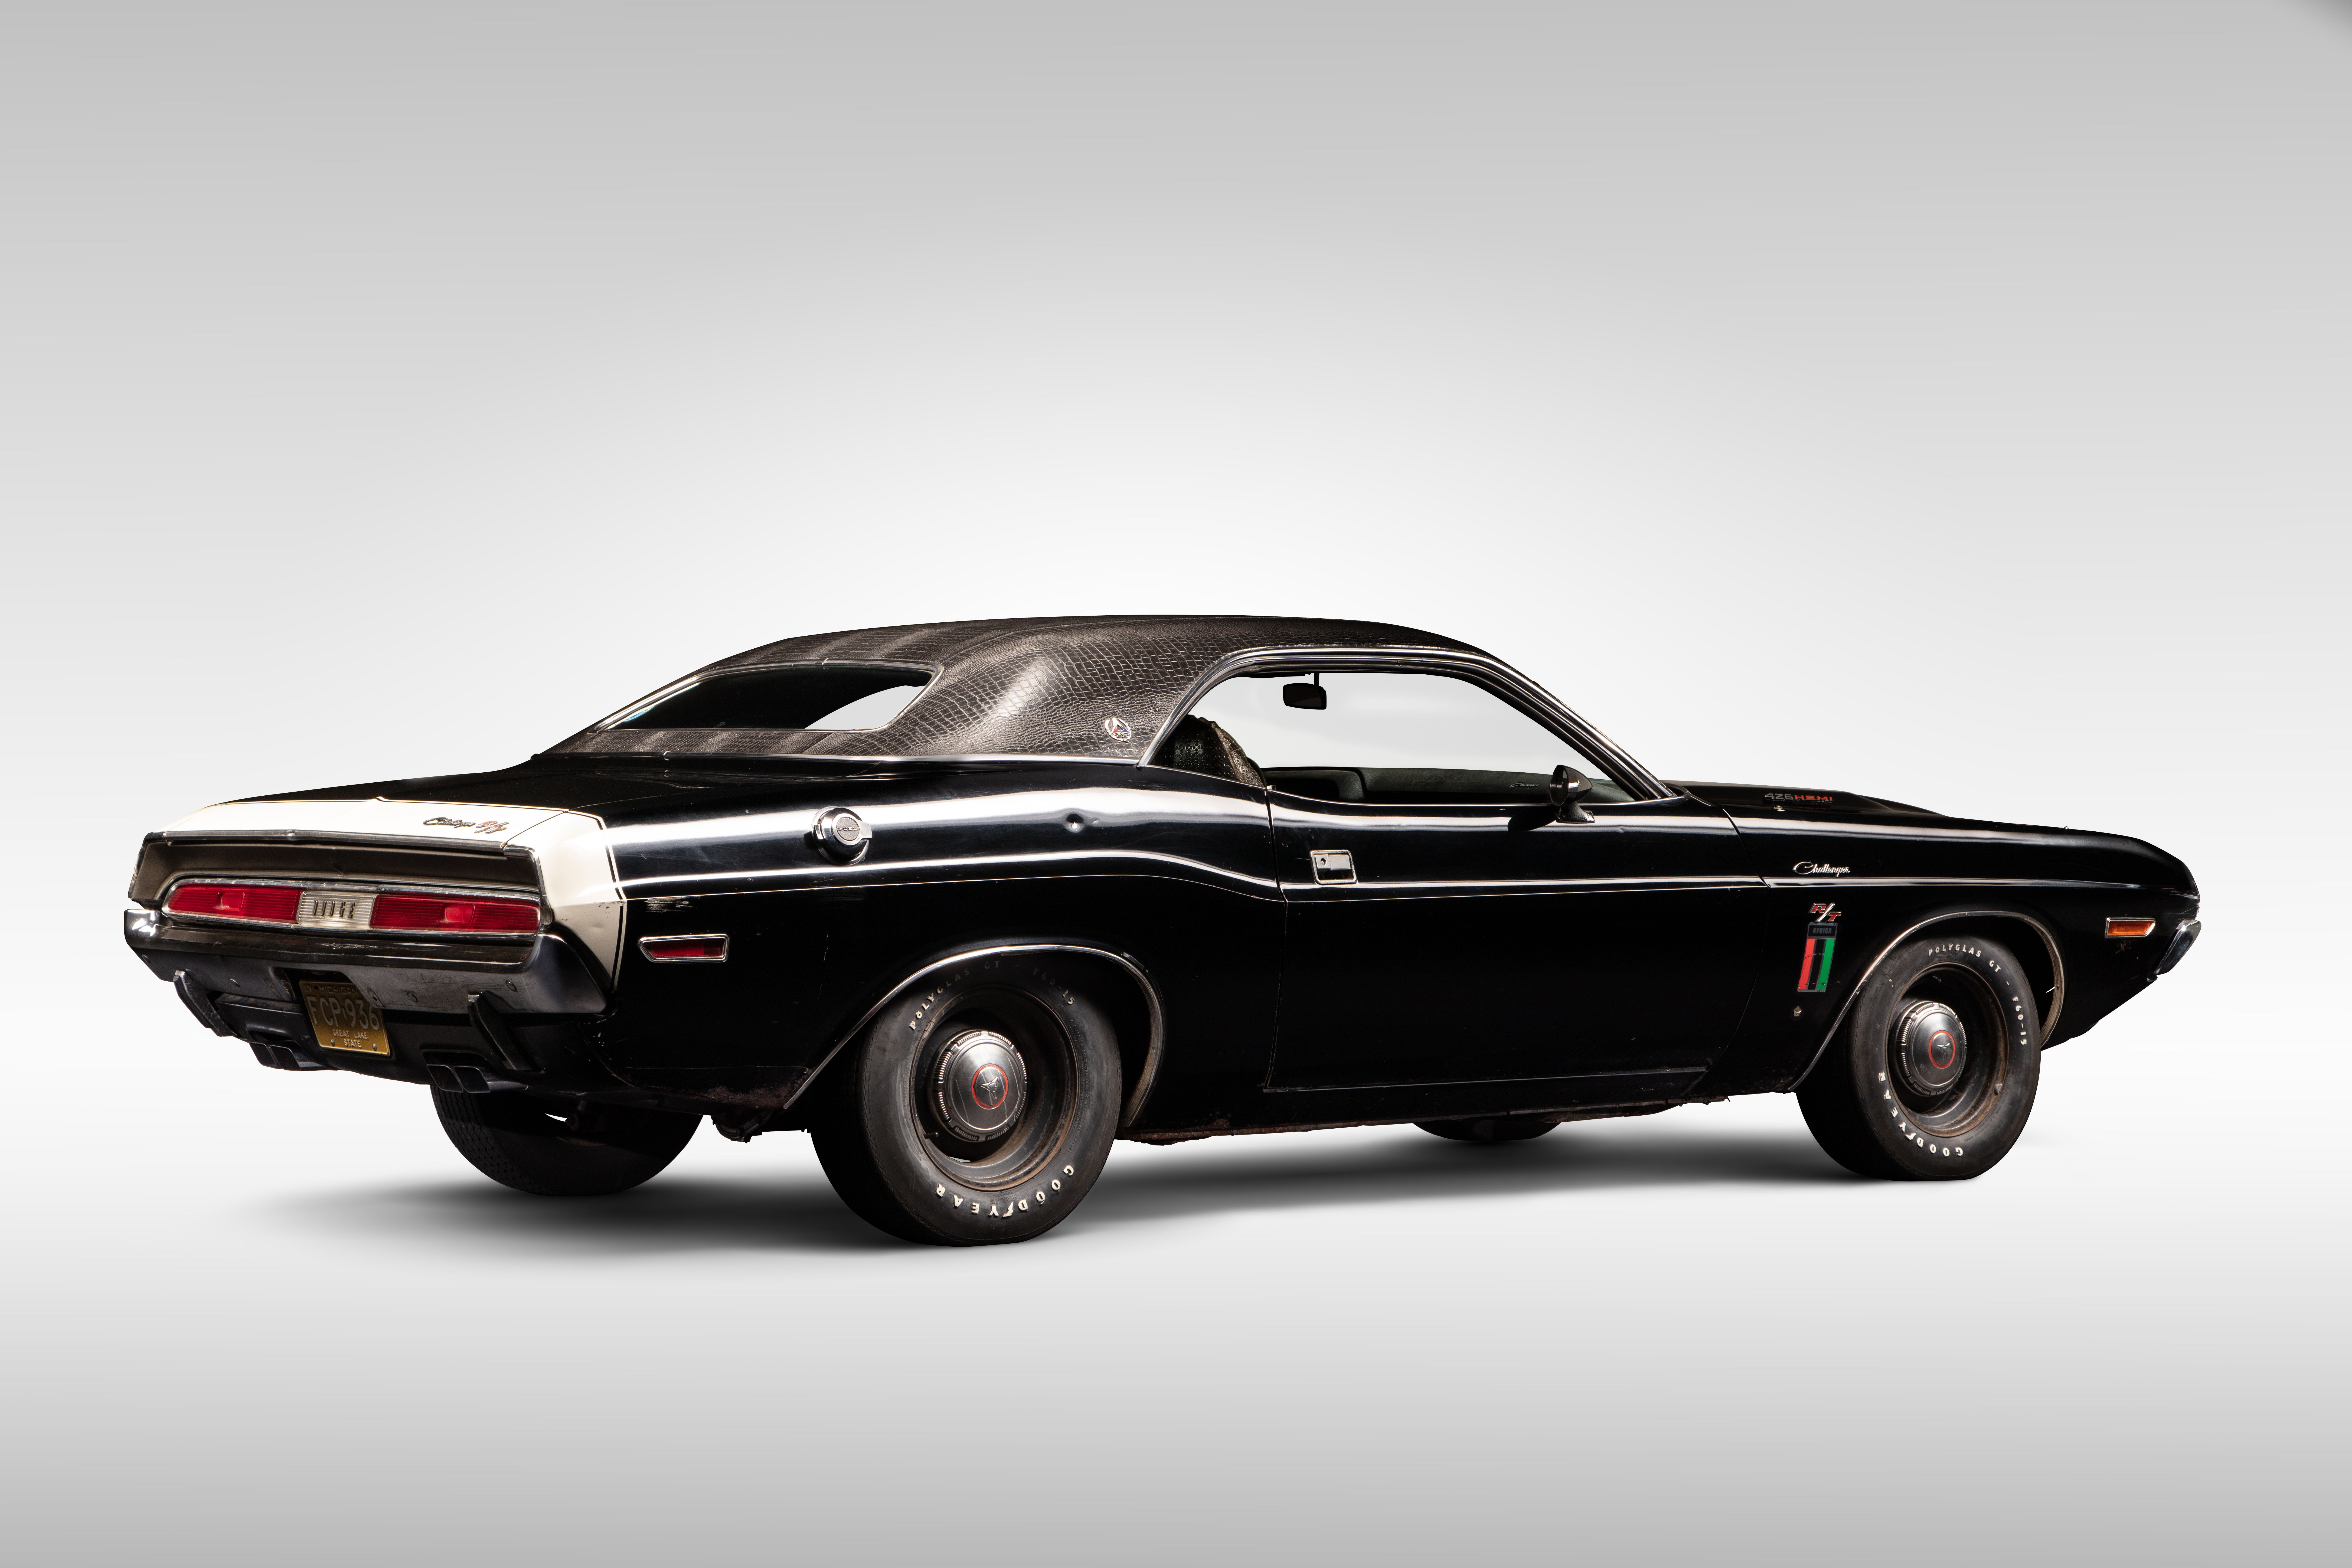 Christmas Showroom 2021 Challenger Black Ghost A Street Racing Cop S Hemi Challenger R T Added To National Register Of Historic Vehicles Rk Motors Classic Cars And Muscle Cars For Sale